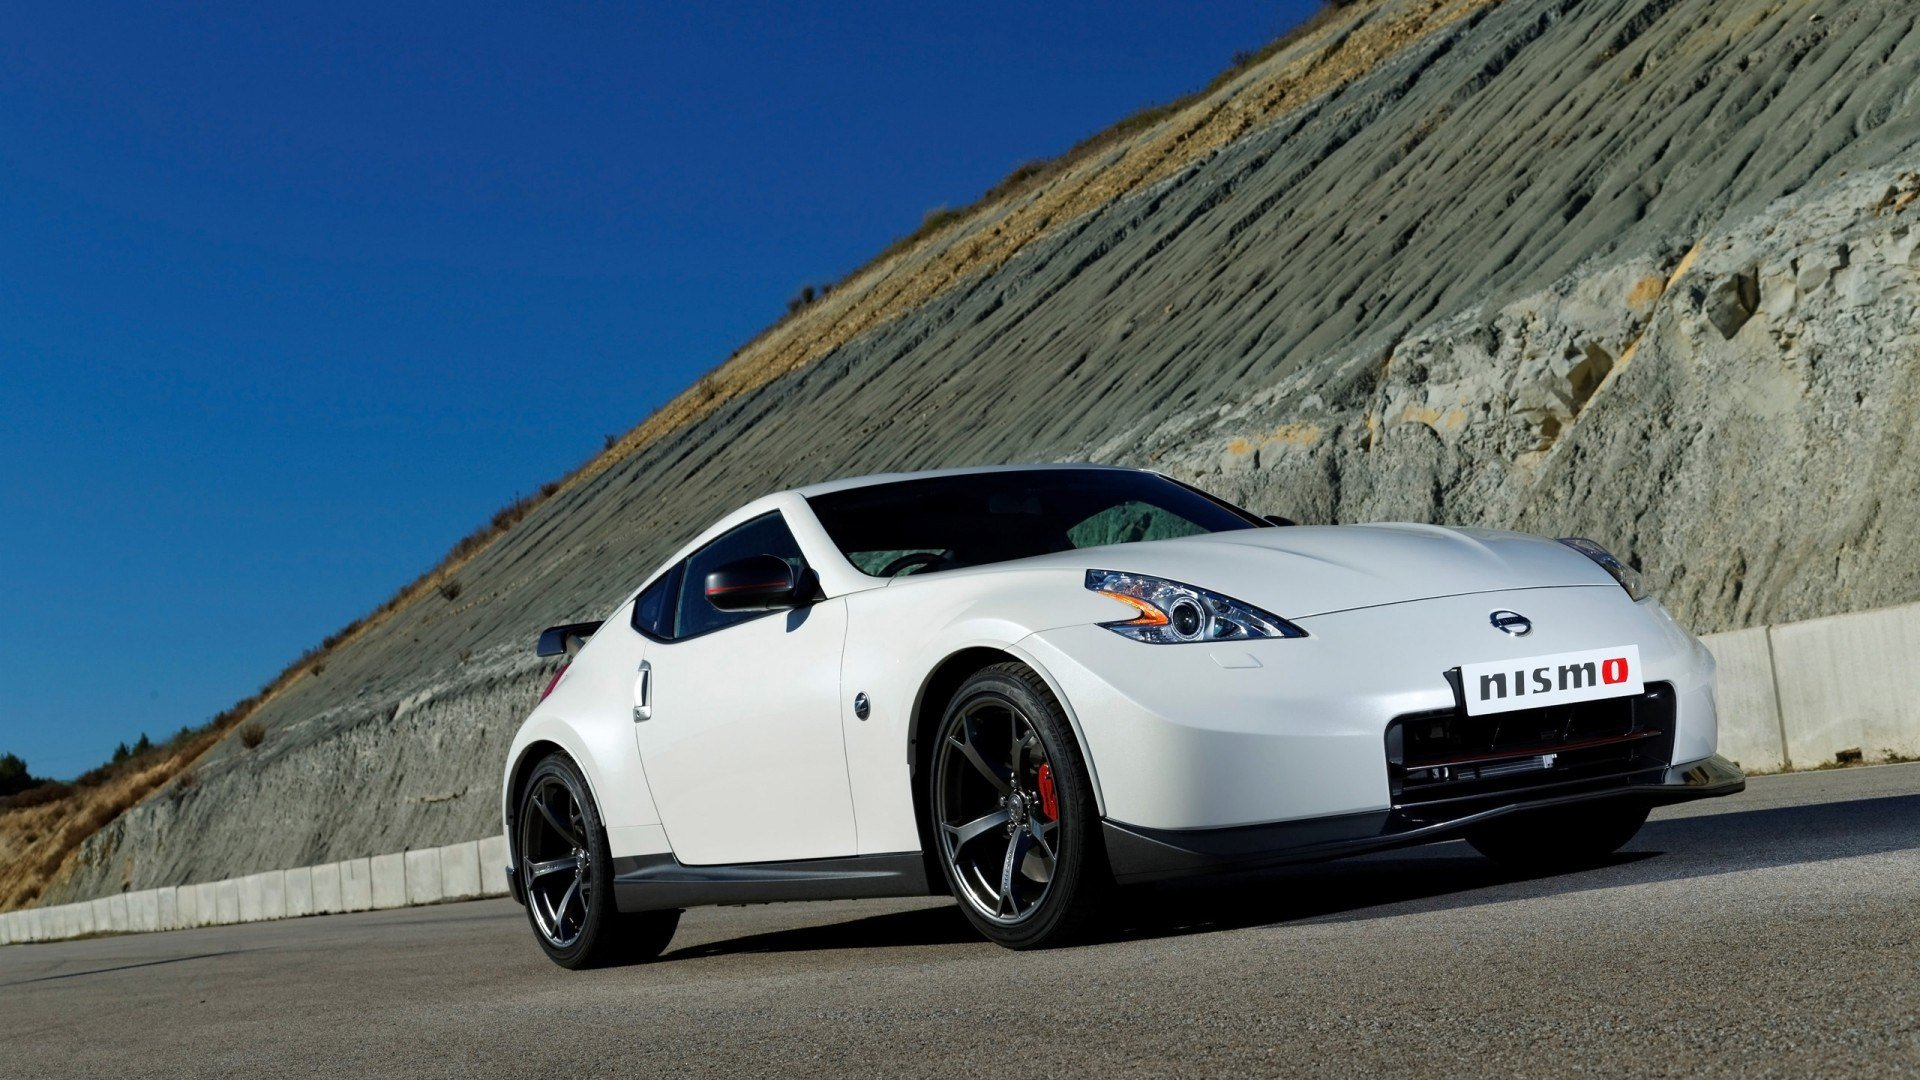 Latest 2014 Nissan 370Z Nismo 3 Wallpaper Hd Car Wallpapers Free Download